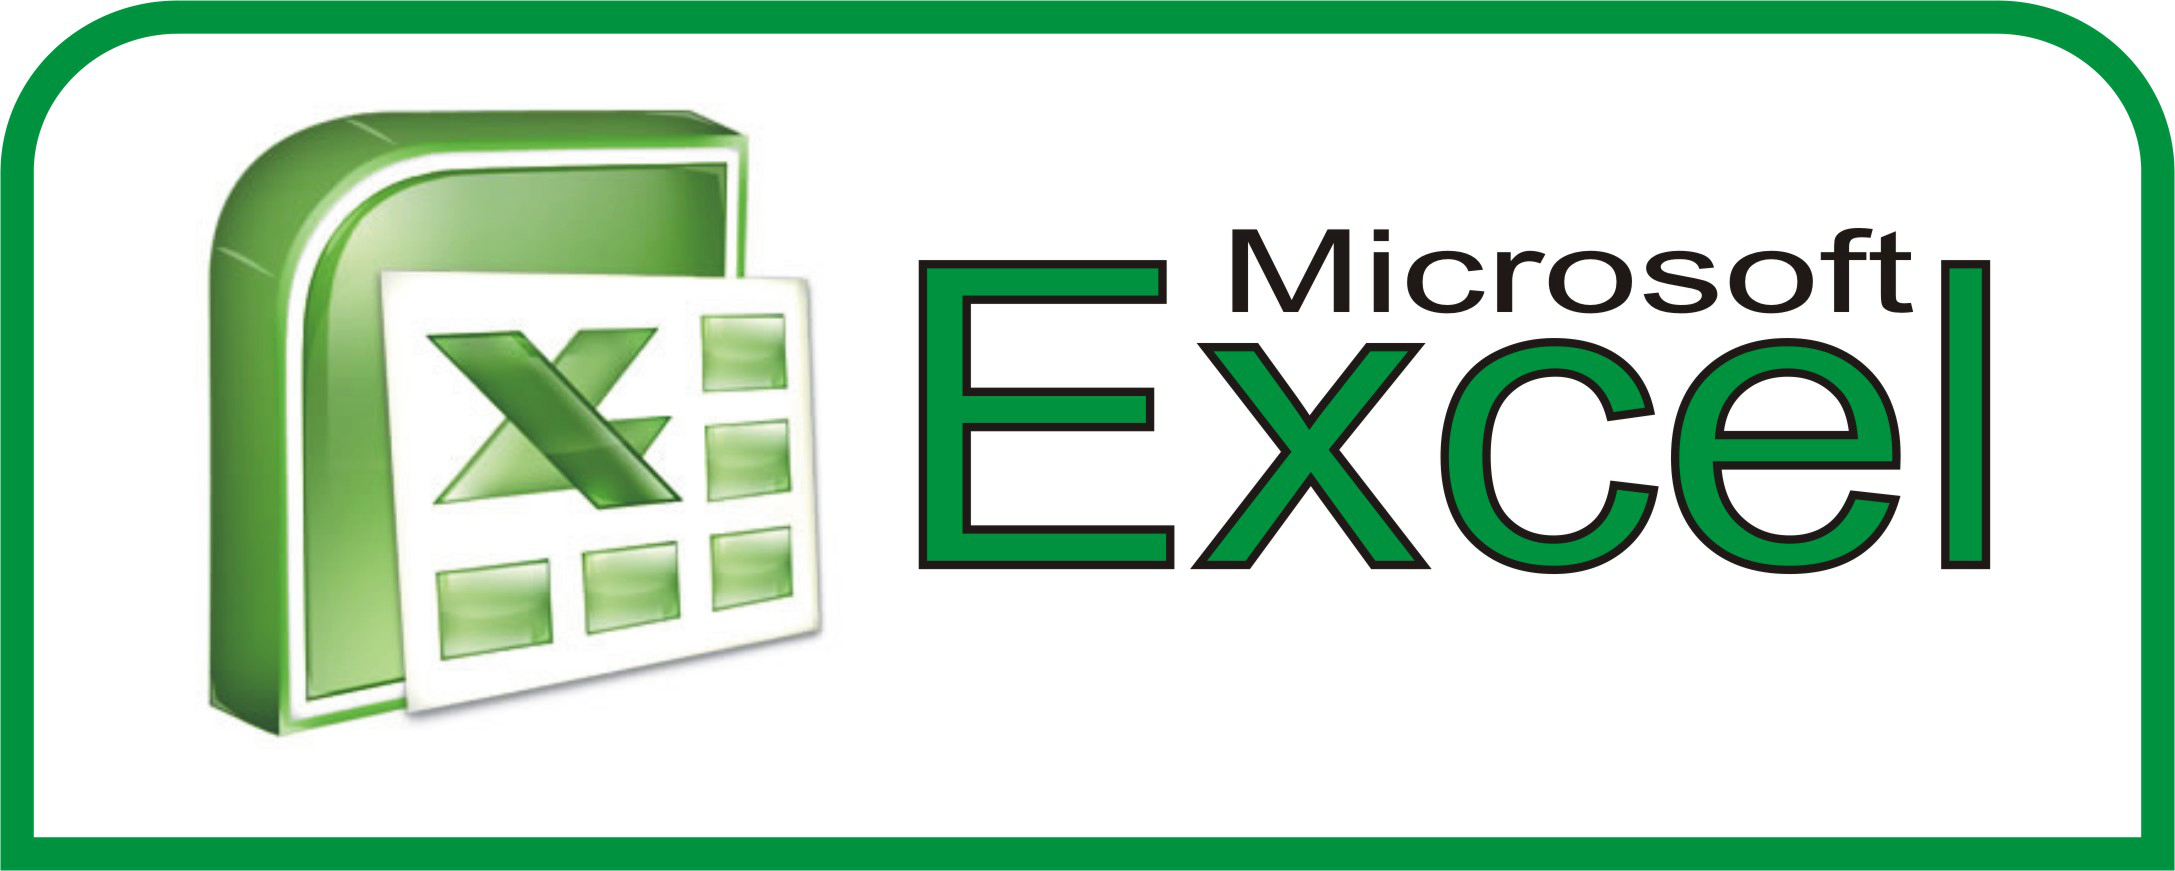 Ediblewildsus  Pleasing  Excel Shortcuts You Probably Didnt Know About  Techdissected With Excellent Vba Coding In Excel Besides Free Excel Dashboard Furthermore How To Add A Sum In Excel With Divine Excel Reporting Templates Also Count If Formula Excel In Addition Add Minutes To Time Excel And Convert Word Document To Excel Spreadsheet As Well As Pdf  Excel Additionally Tutorial On How To Use Excel From Techdissectedcom With Ediblewildsus  Excellent  Excel Shortcuts You Probably Didnt Know About  Techdissected With Divine Vba Coding In Excel Besides Free Excel Dashboard Furthermore How To Add A Sum In Excel And Pleasing Excel Reporting Templates Also Count If Formula Excel In Addition Add Minutes To Time Excel From Techdissectedcom